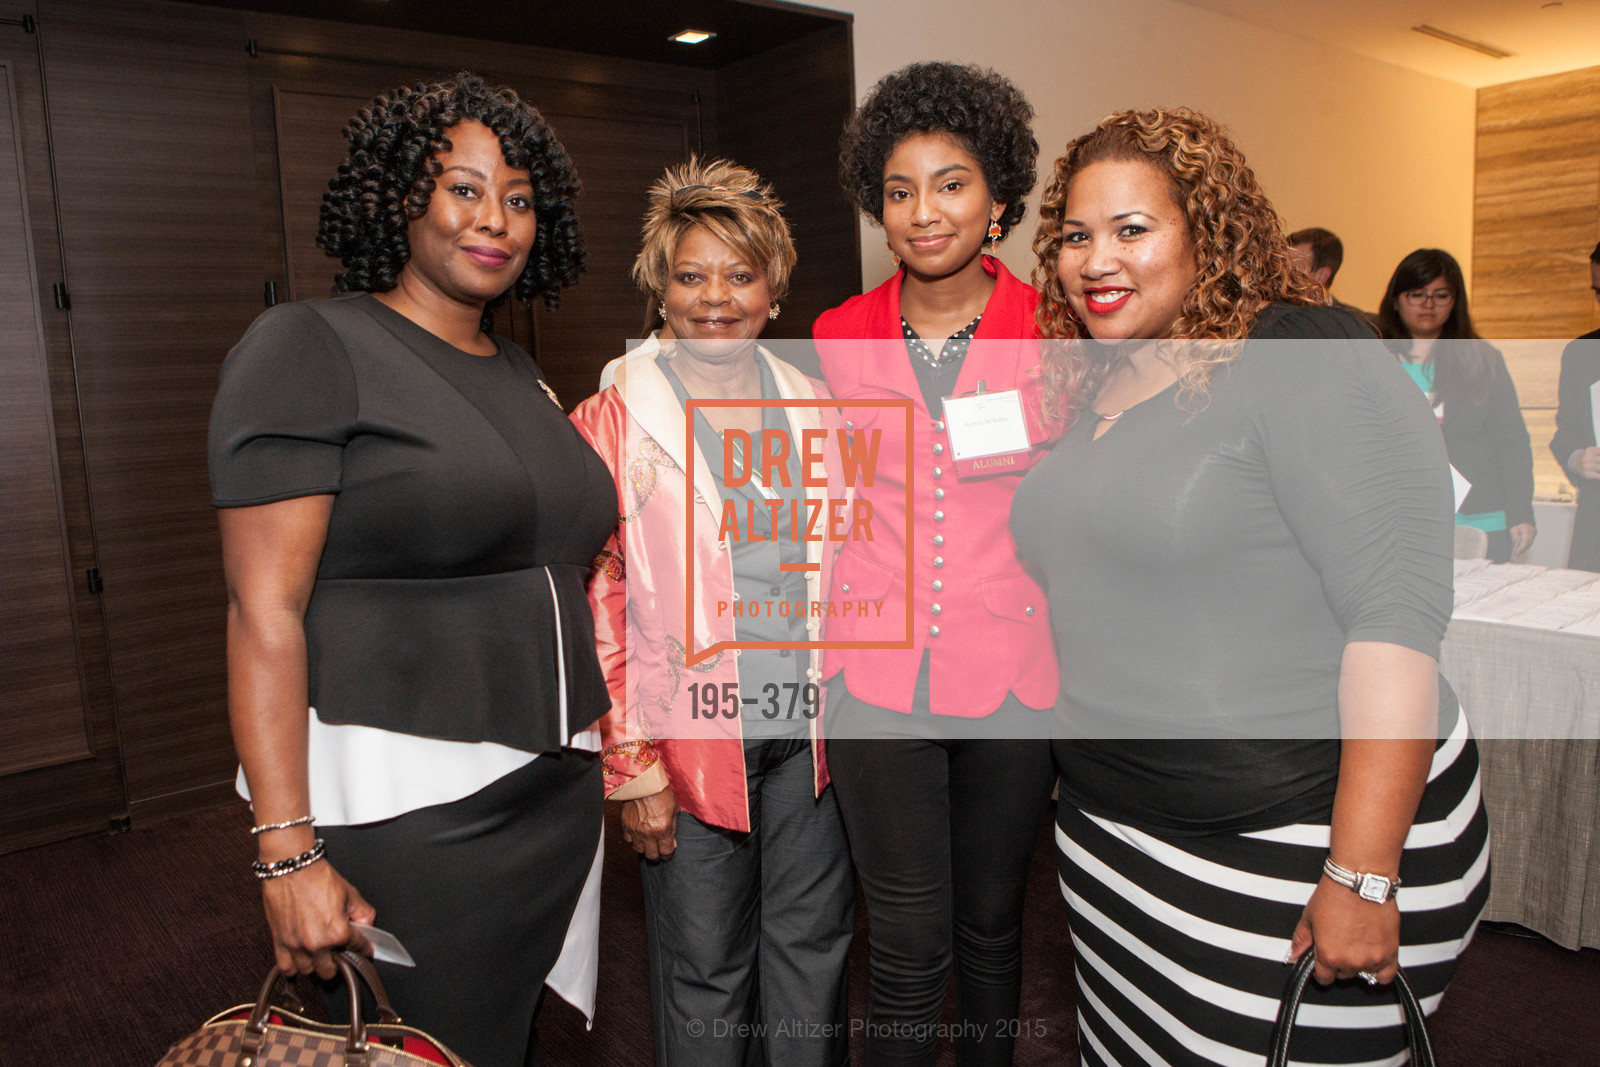 Shareka Nelson, Ella Barcelo, Hannah McKellar, Kim Woods, Genesys Works Bay Area Presents BREAKING THROUGH, St. Regis Hotel. 125 3rd St, October 14th, 2015,Drew Altizer, Drew Altizer Photography, full-service agency, private events, San Francisco photographer, photographer california